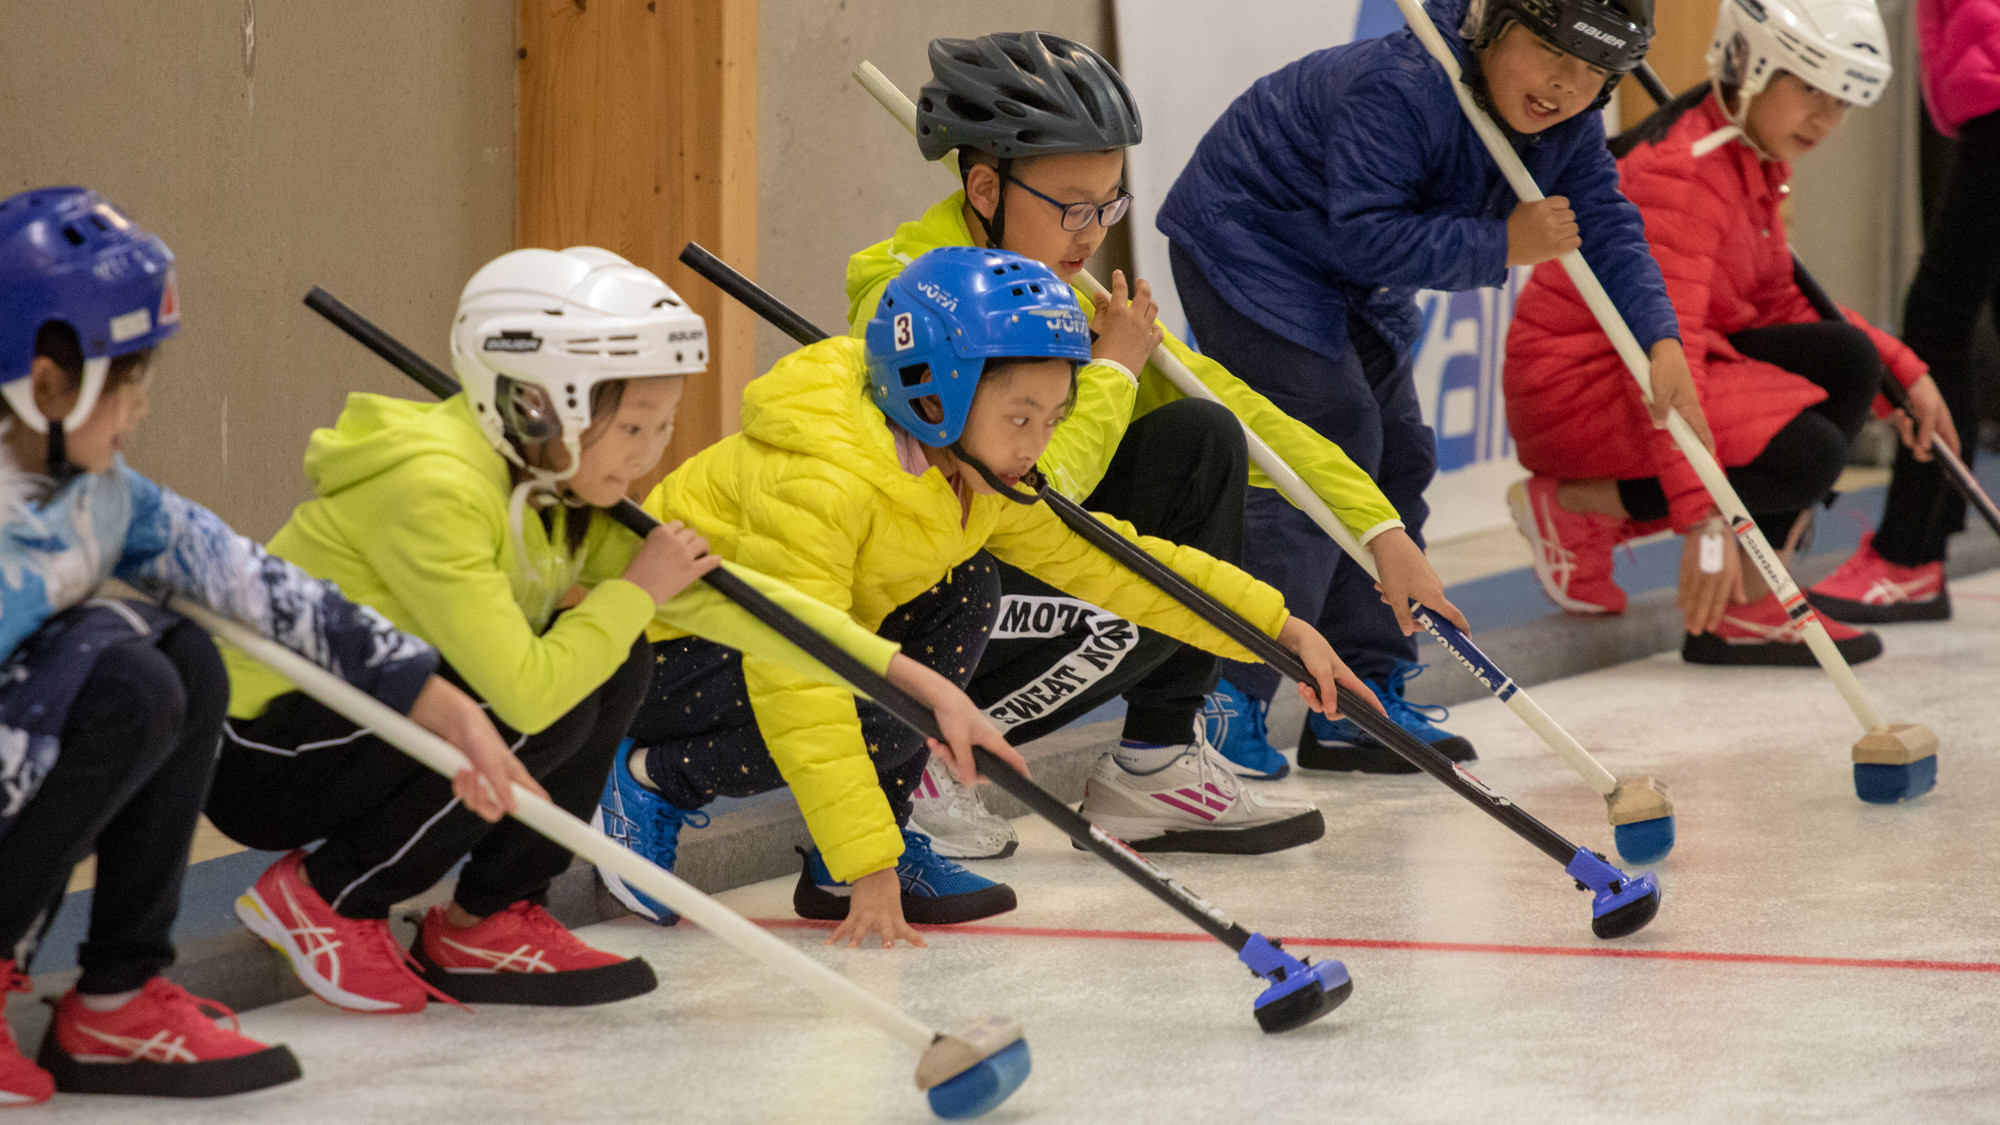 Kisakallio teaches Olympic winter sports to Chinese students. Here they get a taste of curling.